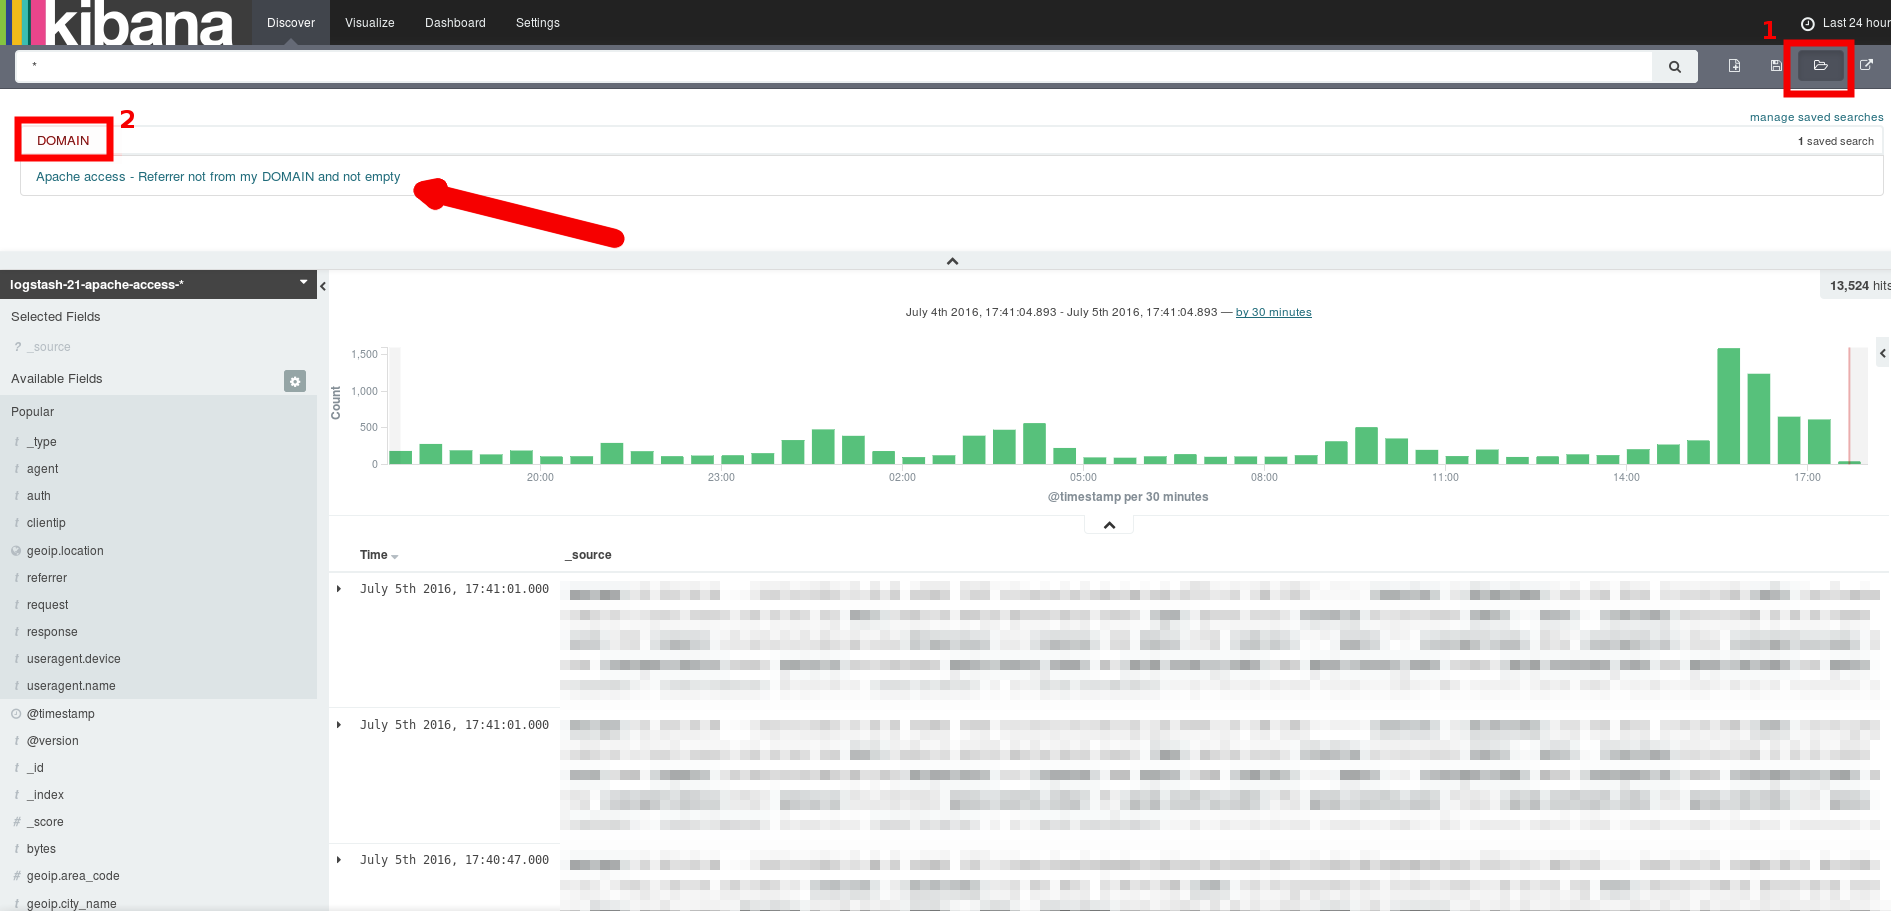 Kibana load search